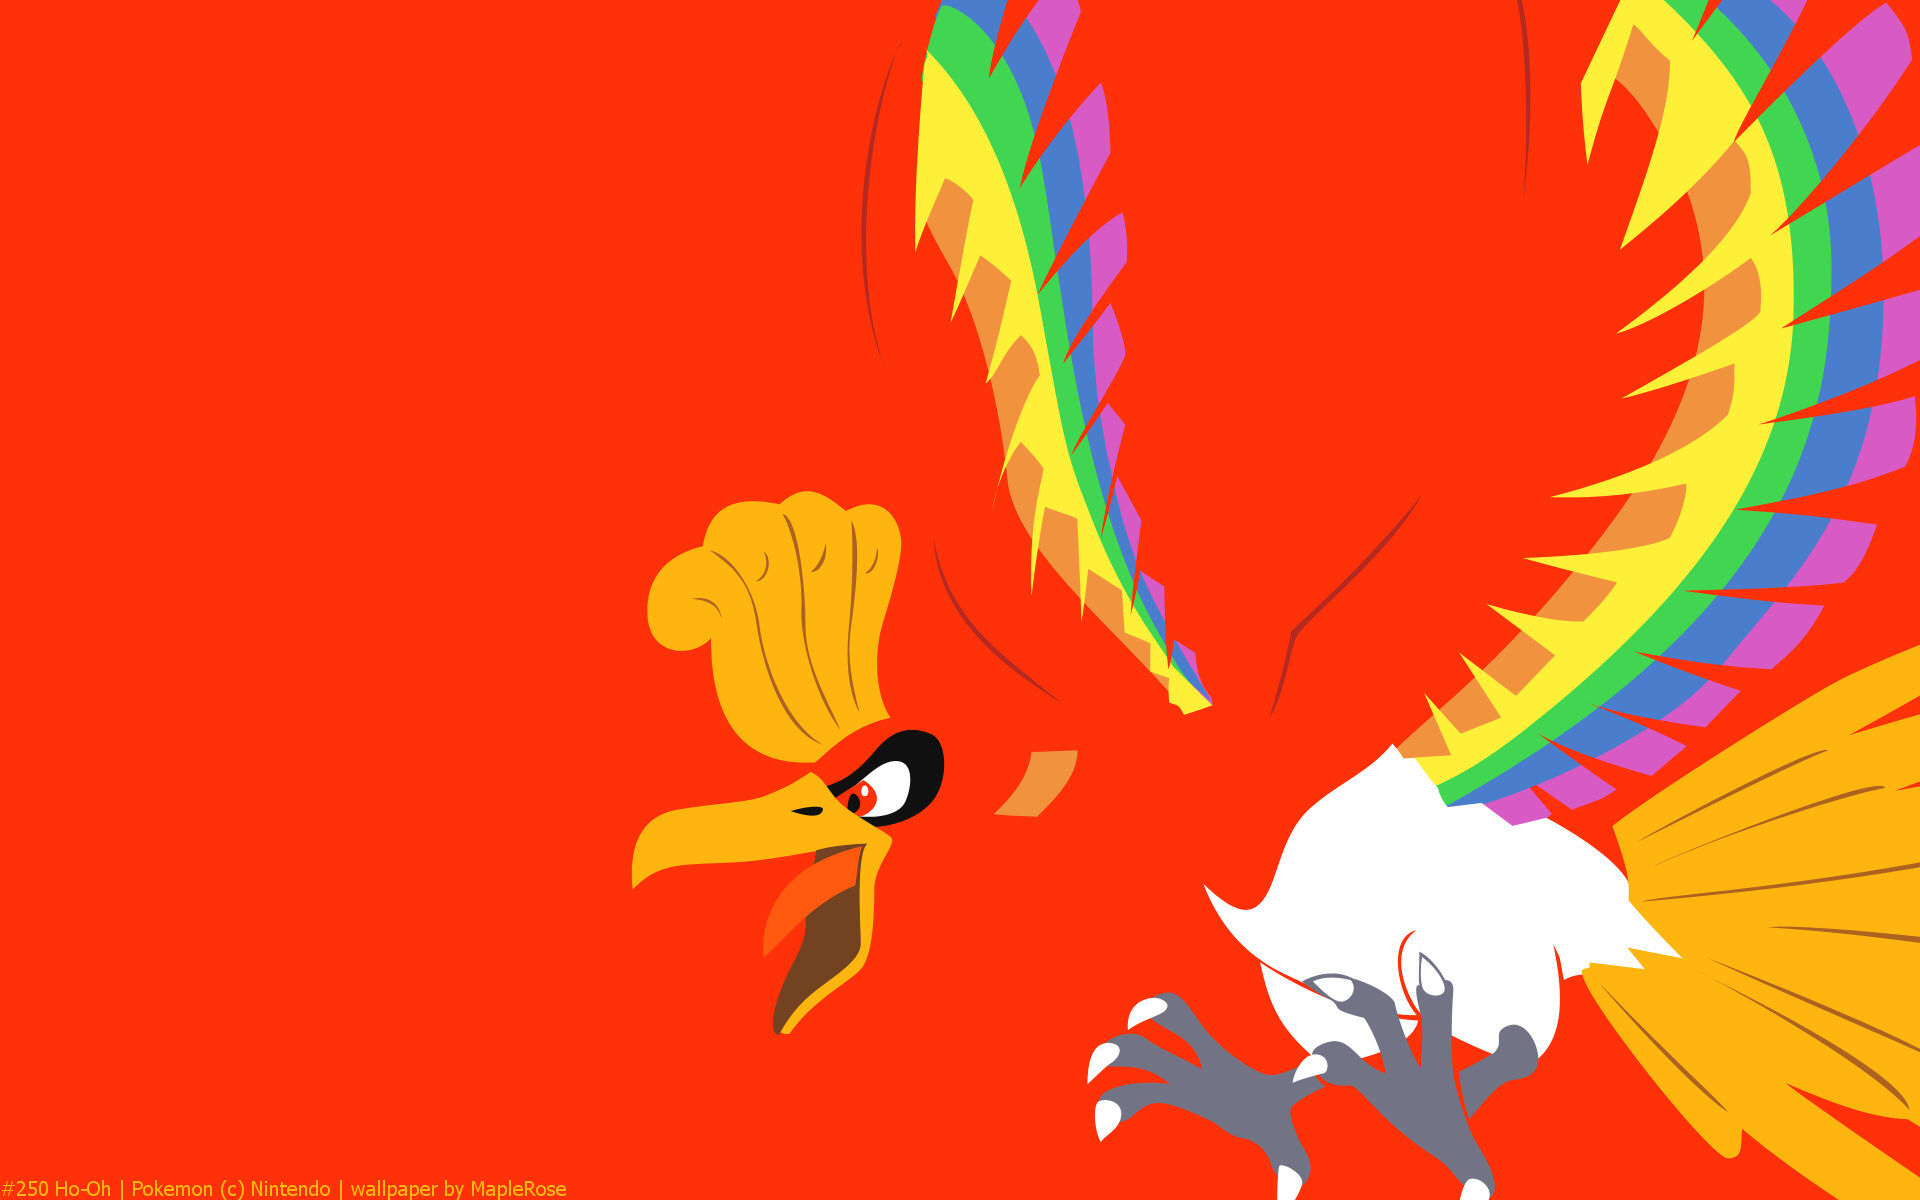 Fantastic Wallpaper Ios Pokemon - 250ho-oh-rainbow1920x1200  Picture_20440.jpg